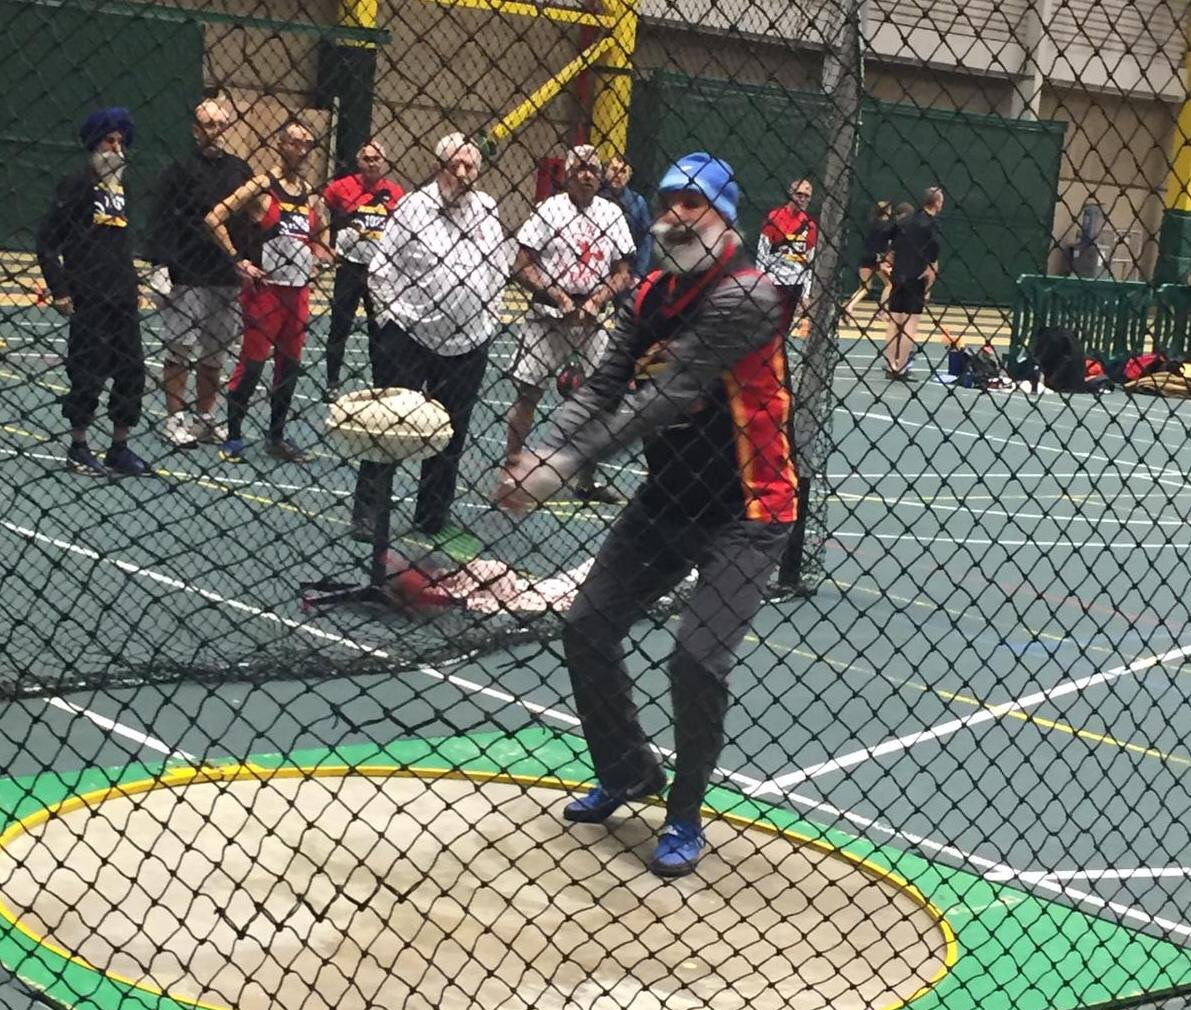 Harnek in action ( Weight Throw ) during Indoor CMA at Edmonton